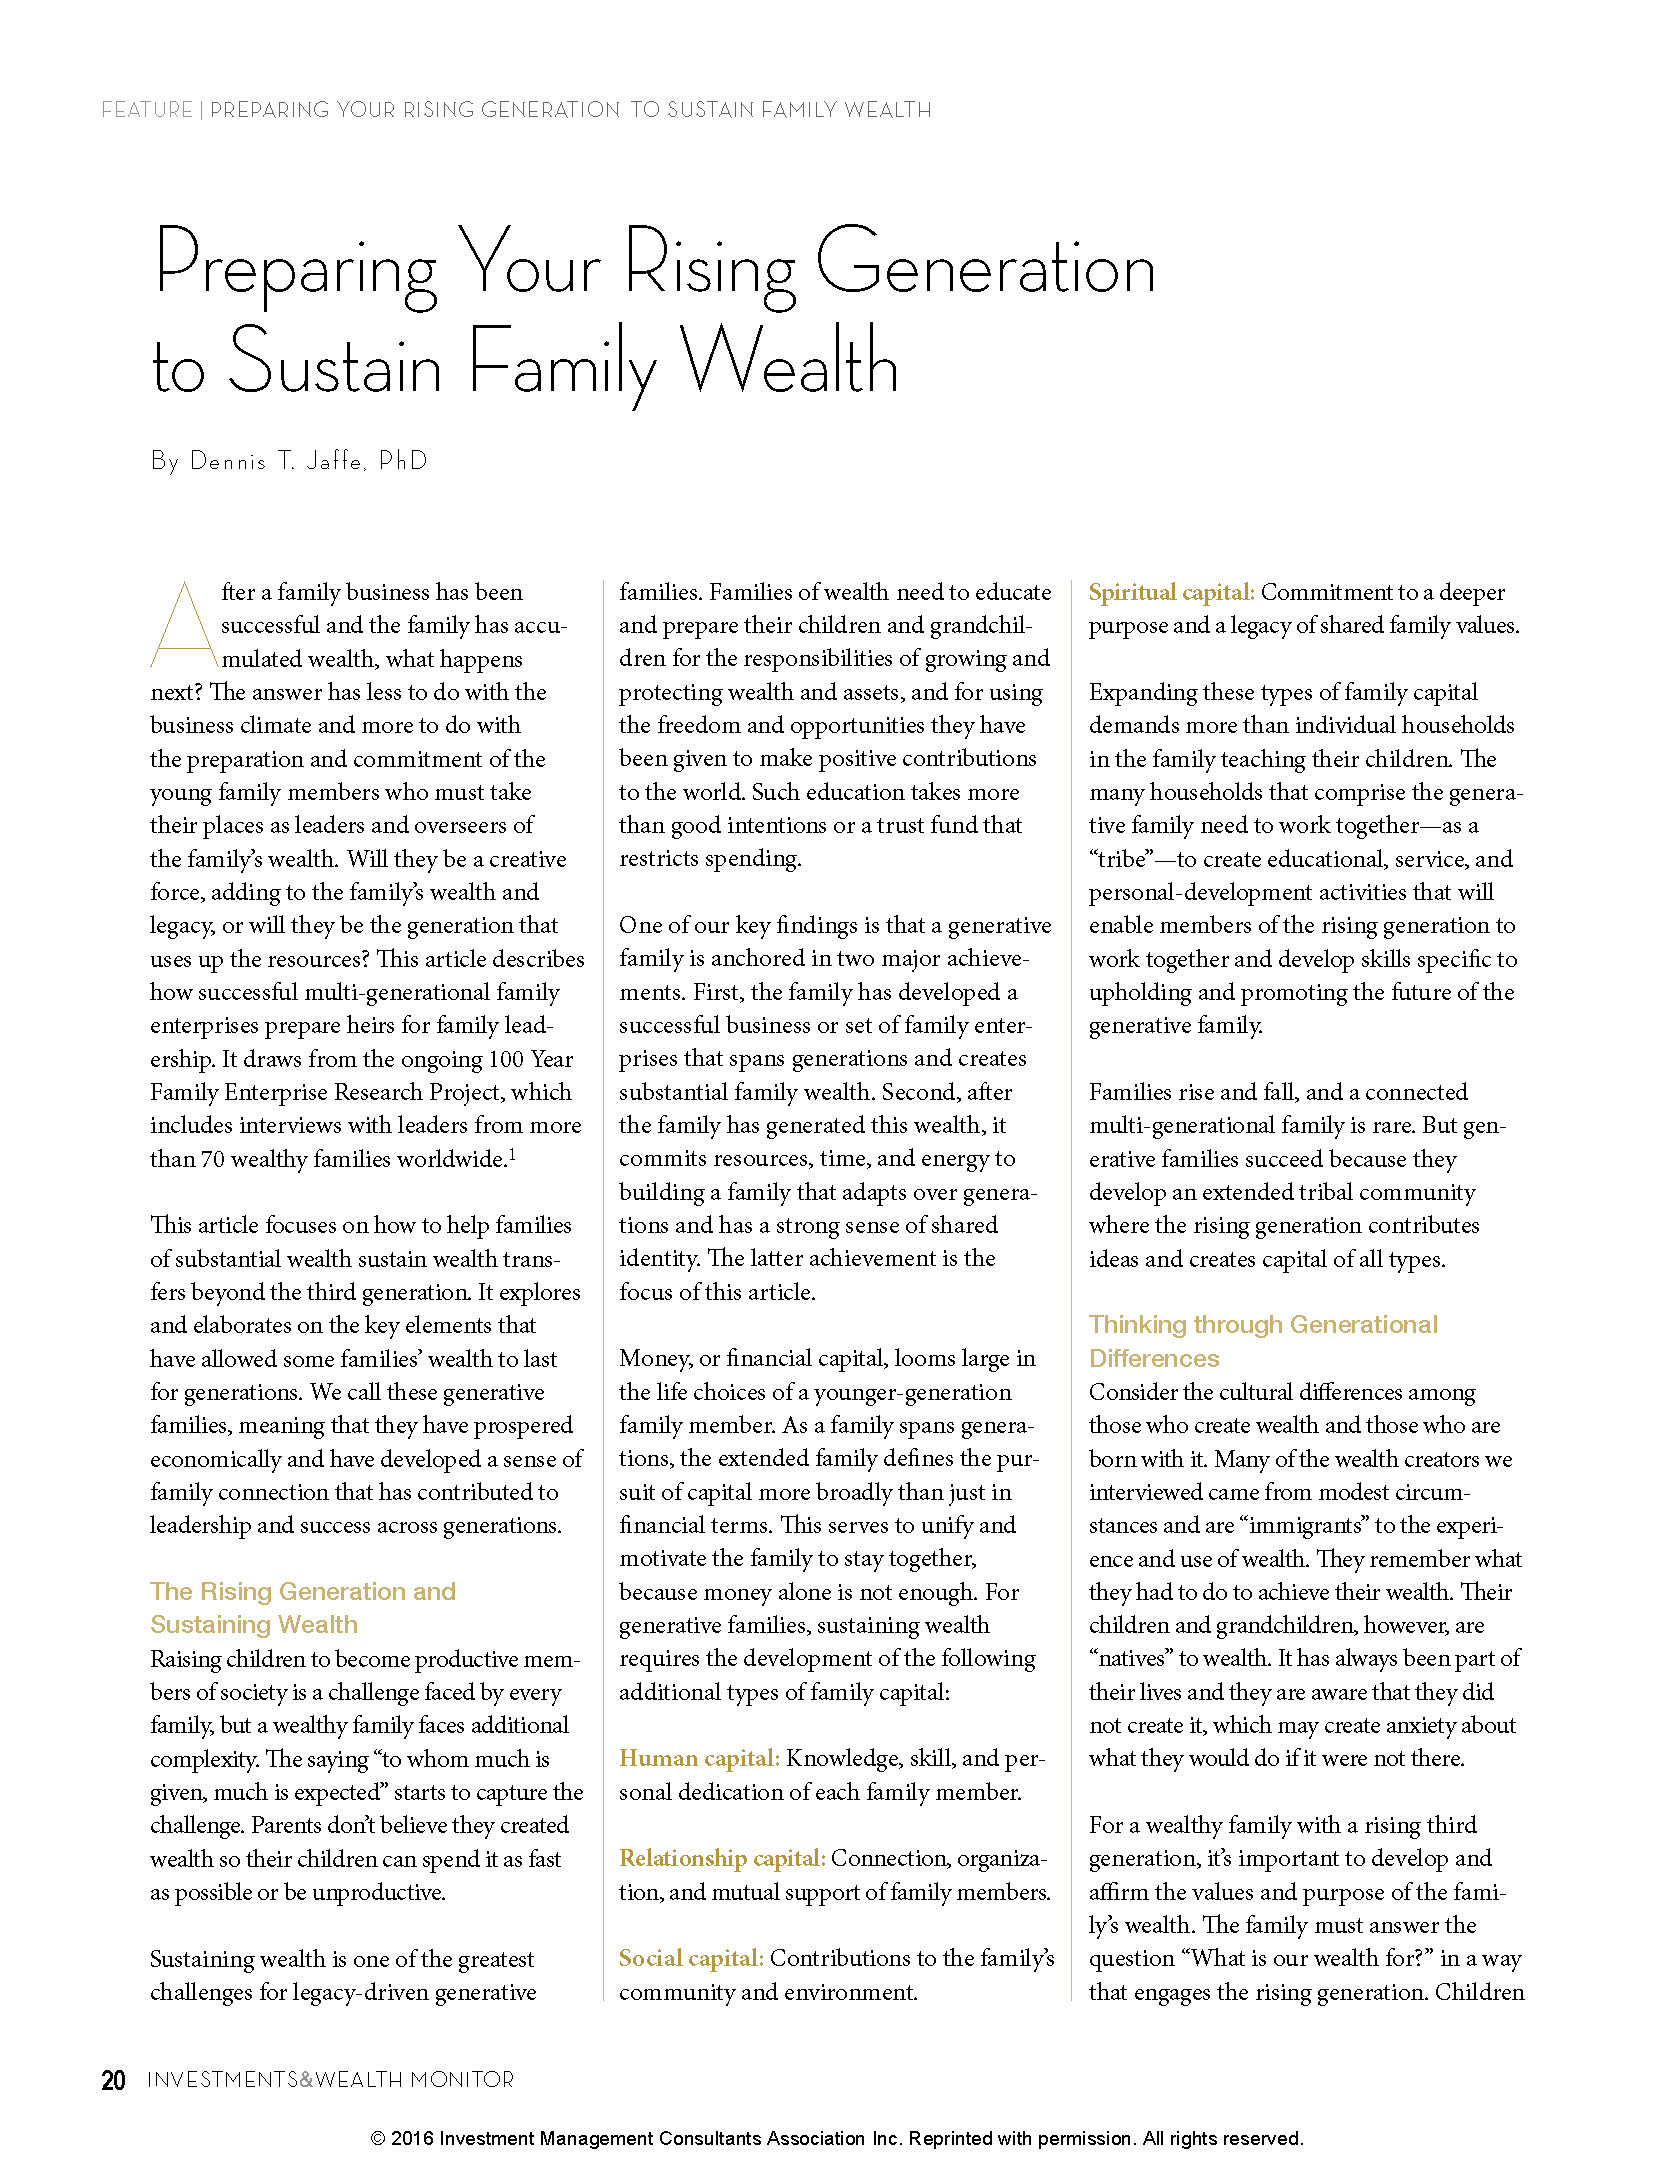 for love money a comprehensive guide to the successful generational transfer of wealth